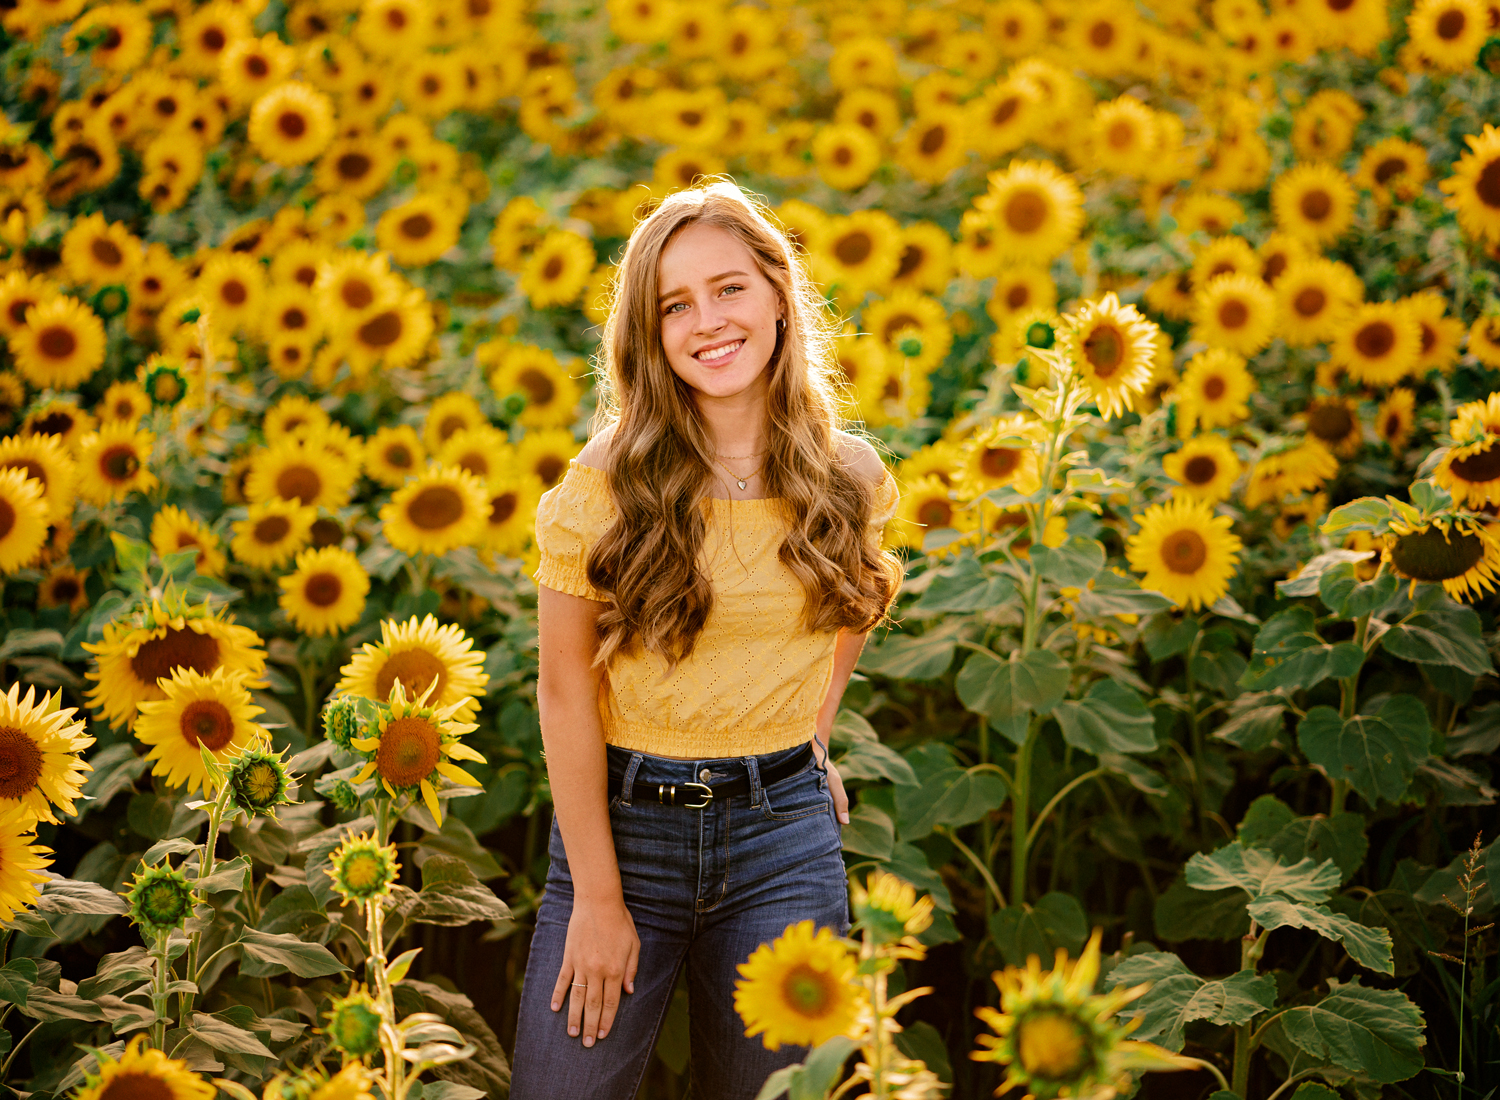 fun portrait of blonde ramstein high school senior girl in yellow croc top and jeans in sunflower fields with natural light at sunset by kmc family photographer sarah havens